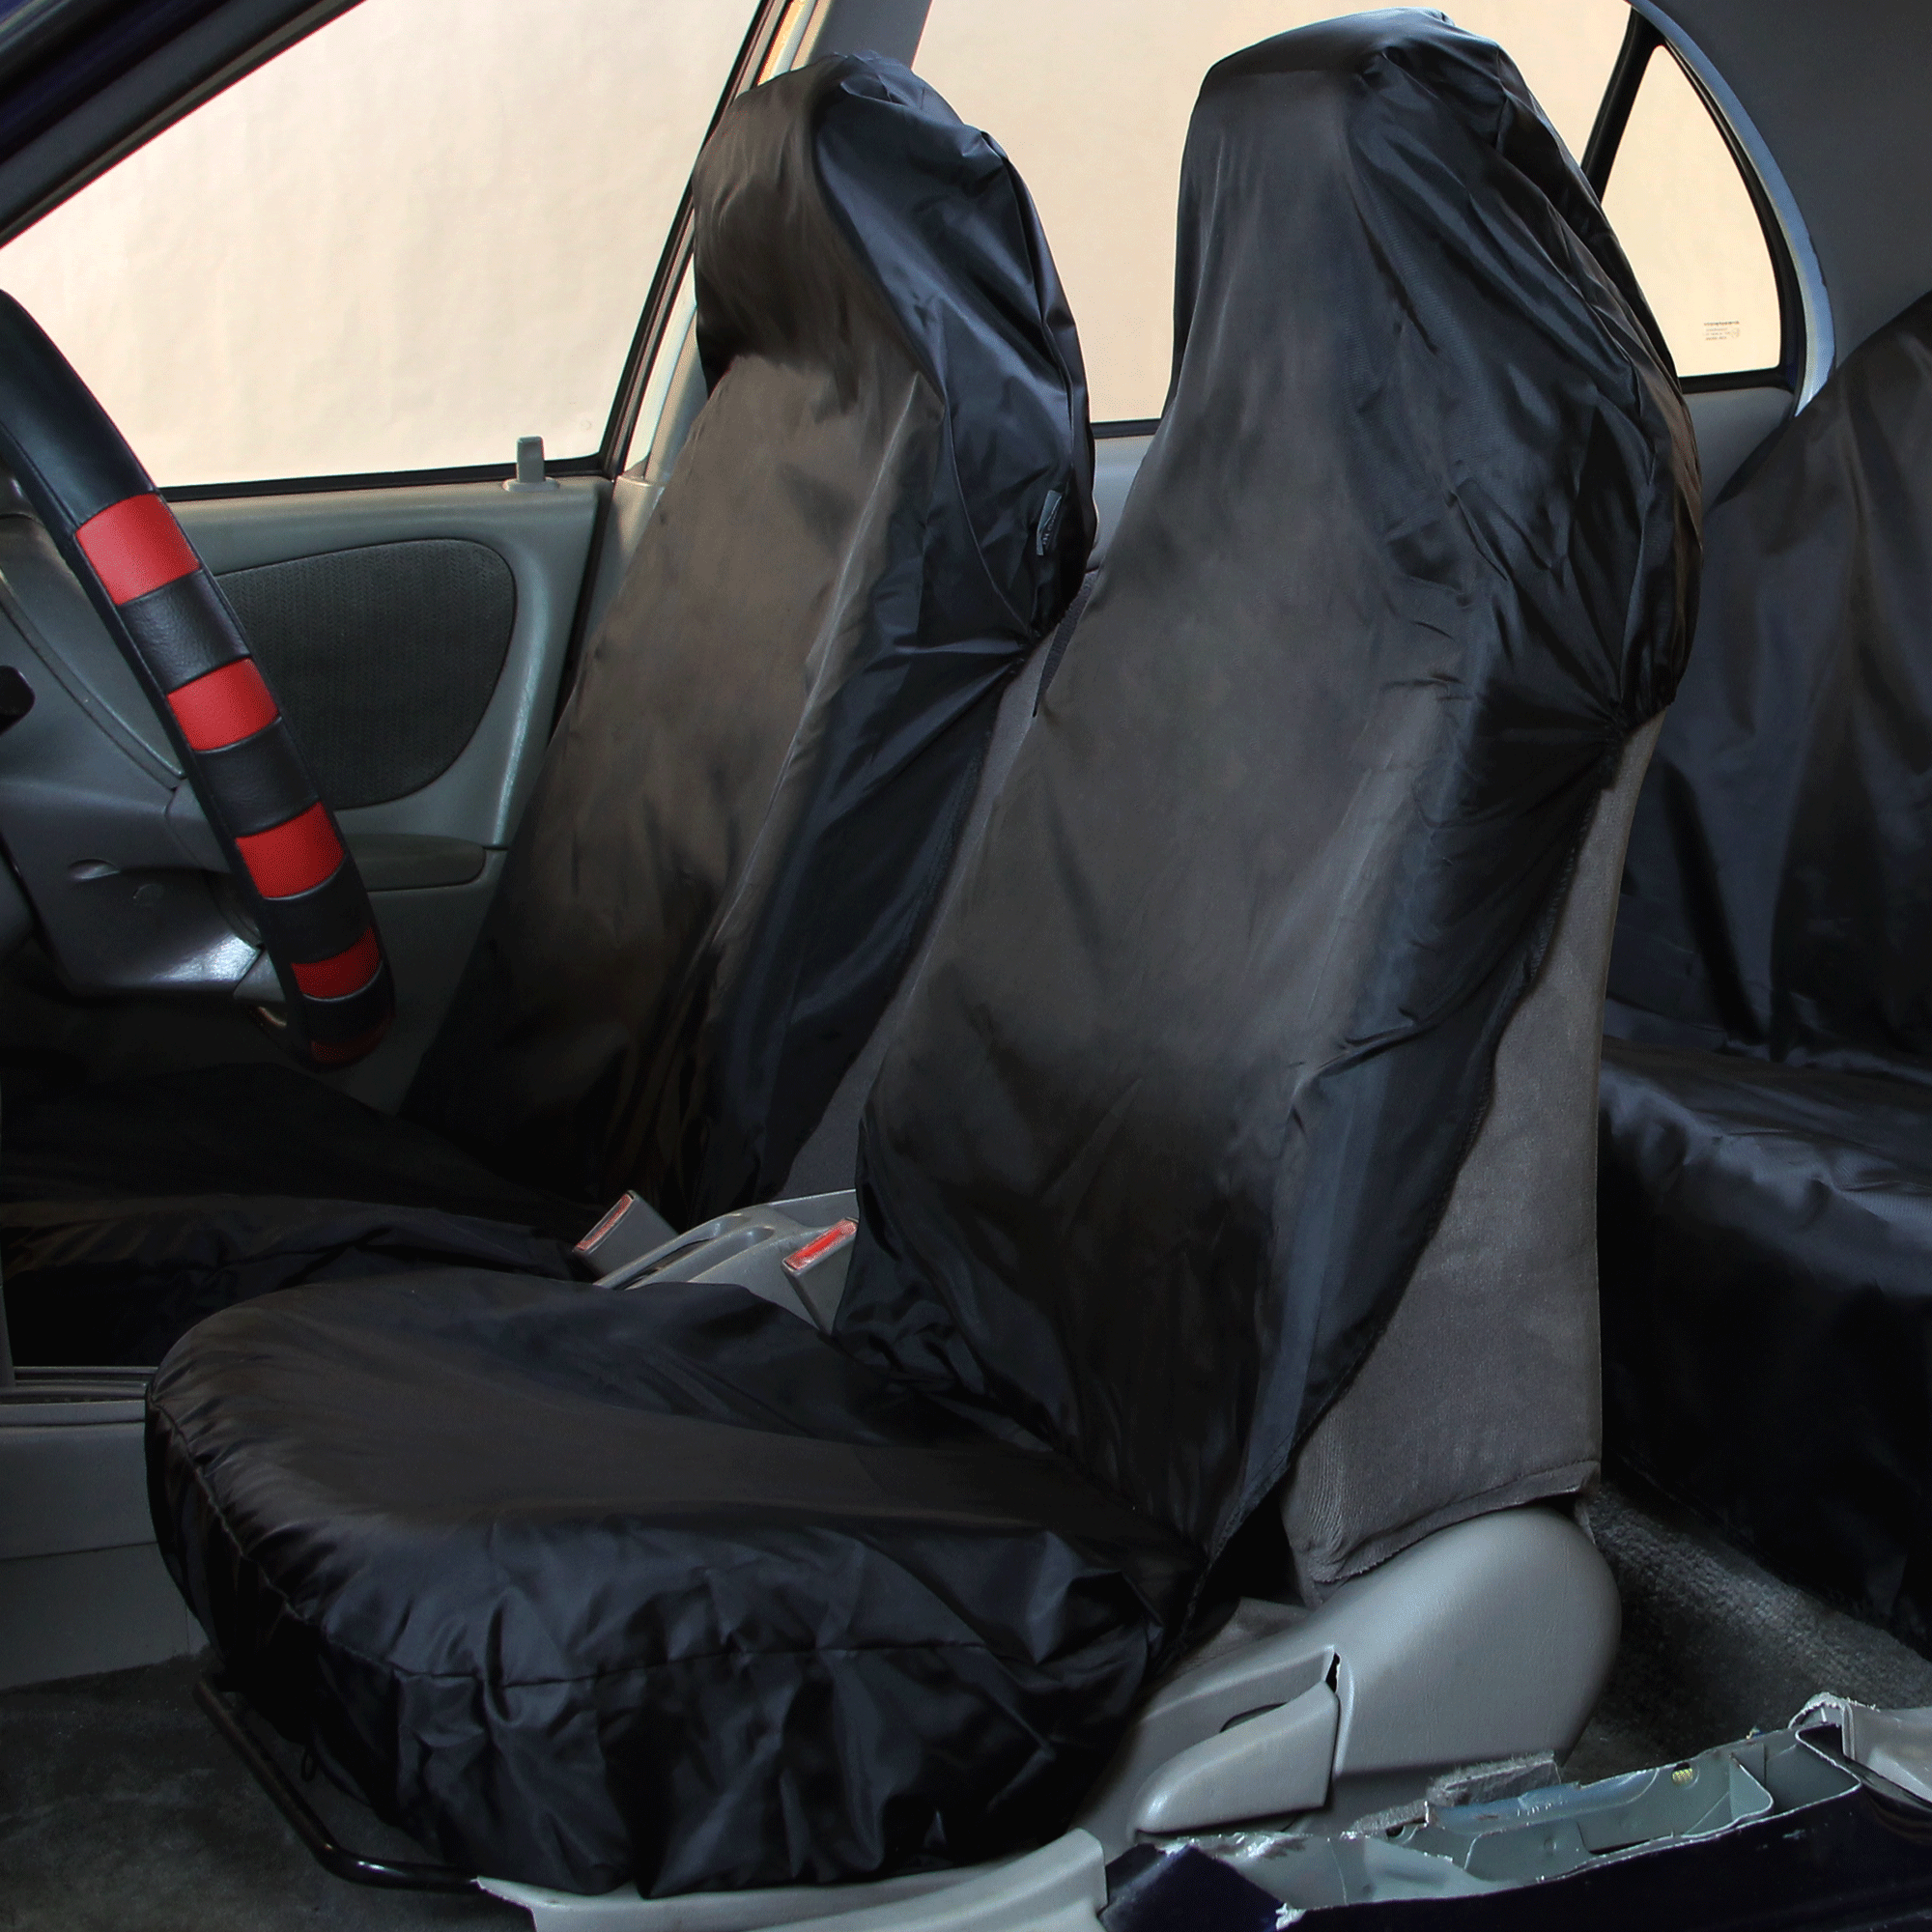 waterproof car seat covers black 2 front seats ebay. Black Bedroom Furniture Sets. Home Design Ideas